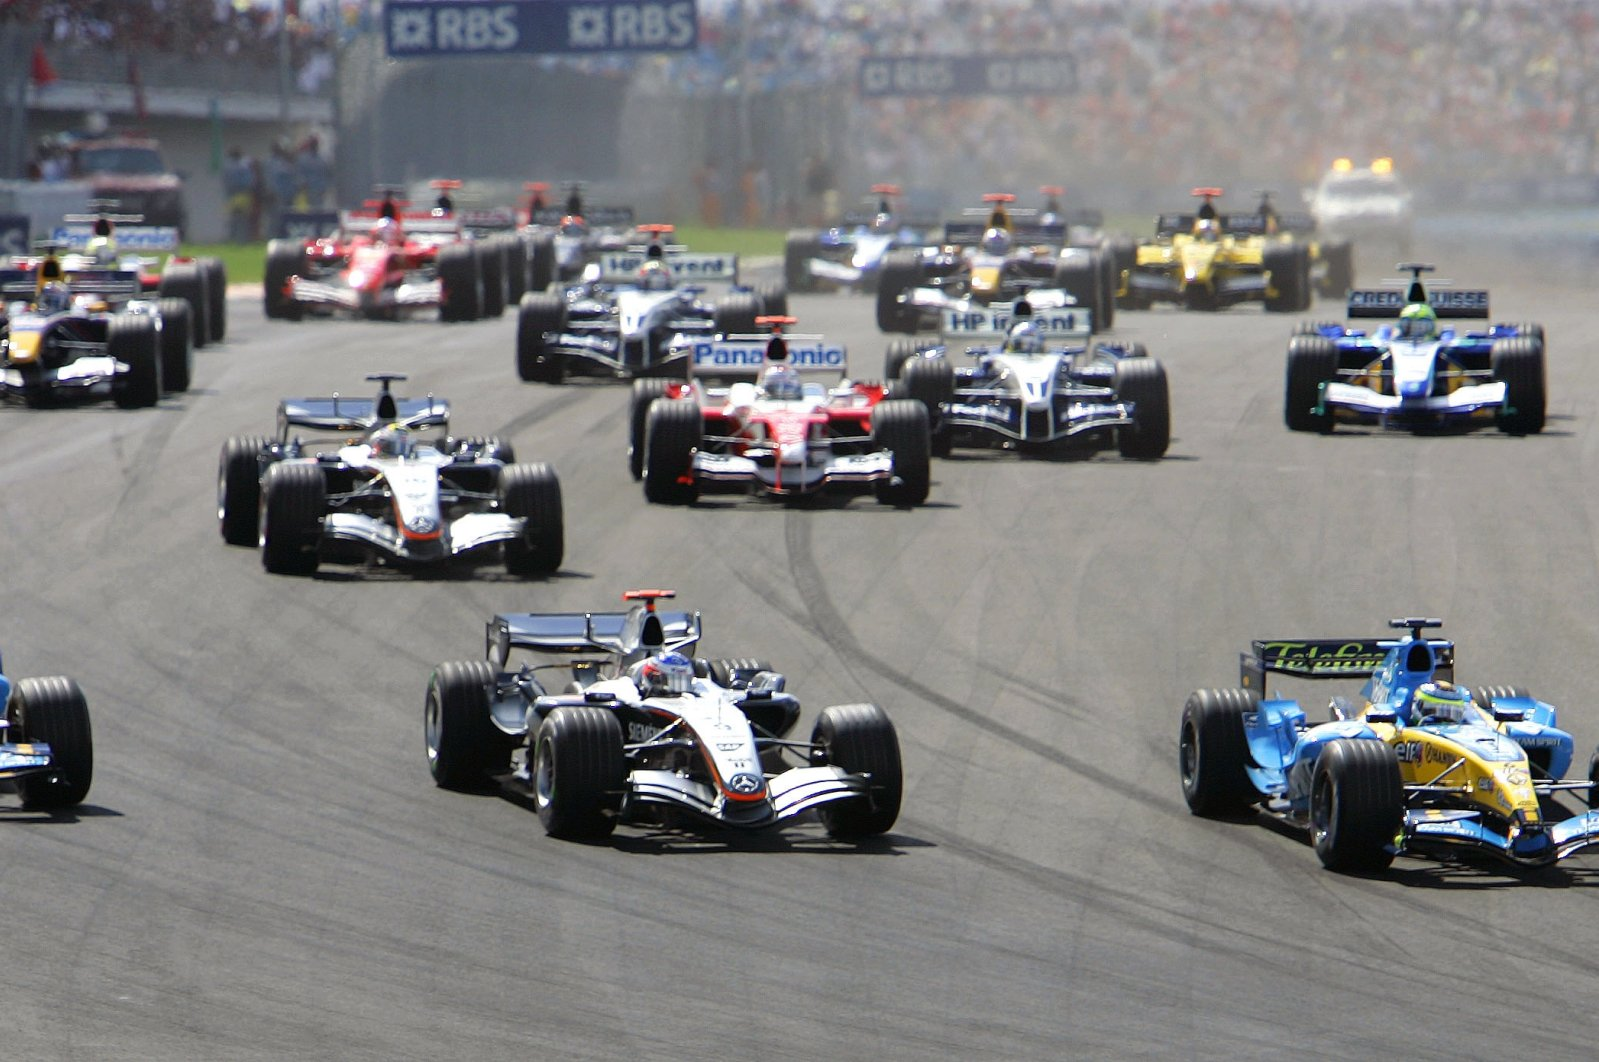 McLaren's Formula One driver Kimi Raikkonen of Finland (C) leads the pack, next to Renault's drivers Fernando Alonso of Spain (L) and Giancarlo Fisichella of Italy (R) after the start of the Turkish Formula One Grand Prix at Istanbul Park race track in Istanbul, Aug. 21, 2005. (Reuters Photo)